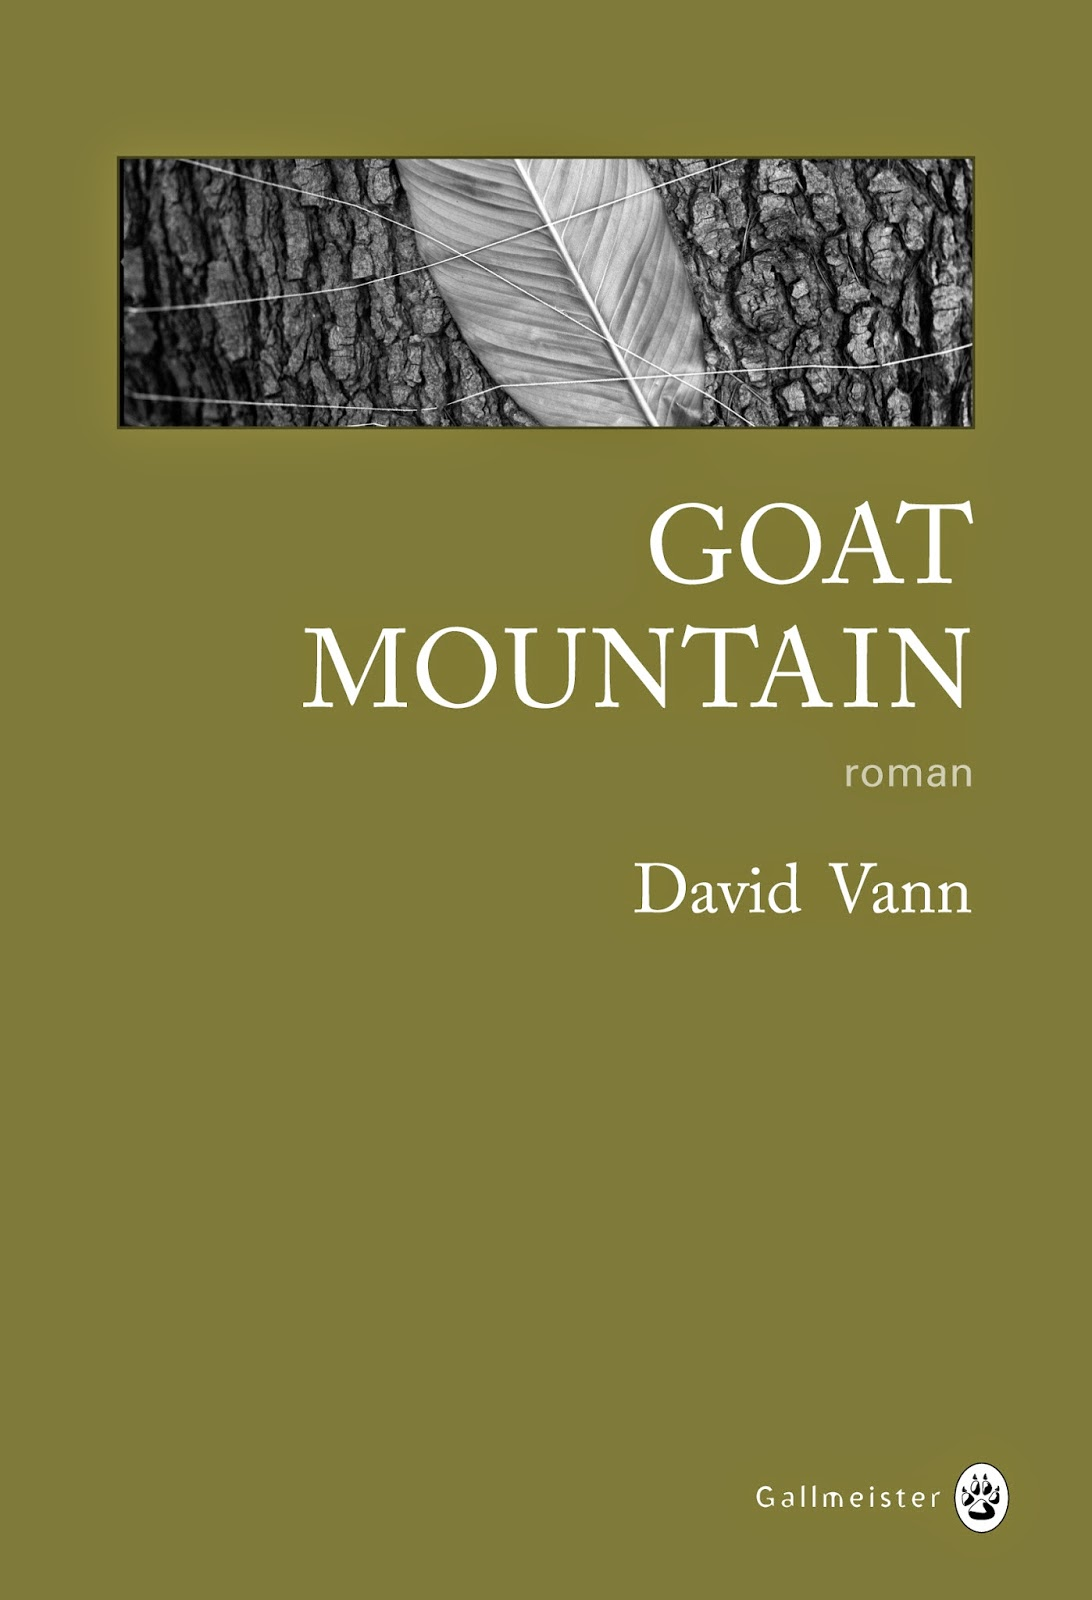 Goat Mountain - David Vann - Editions Gallmeister - 2014 - Traduction de l'américain par Laura Derajinski.